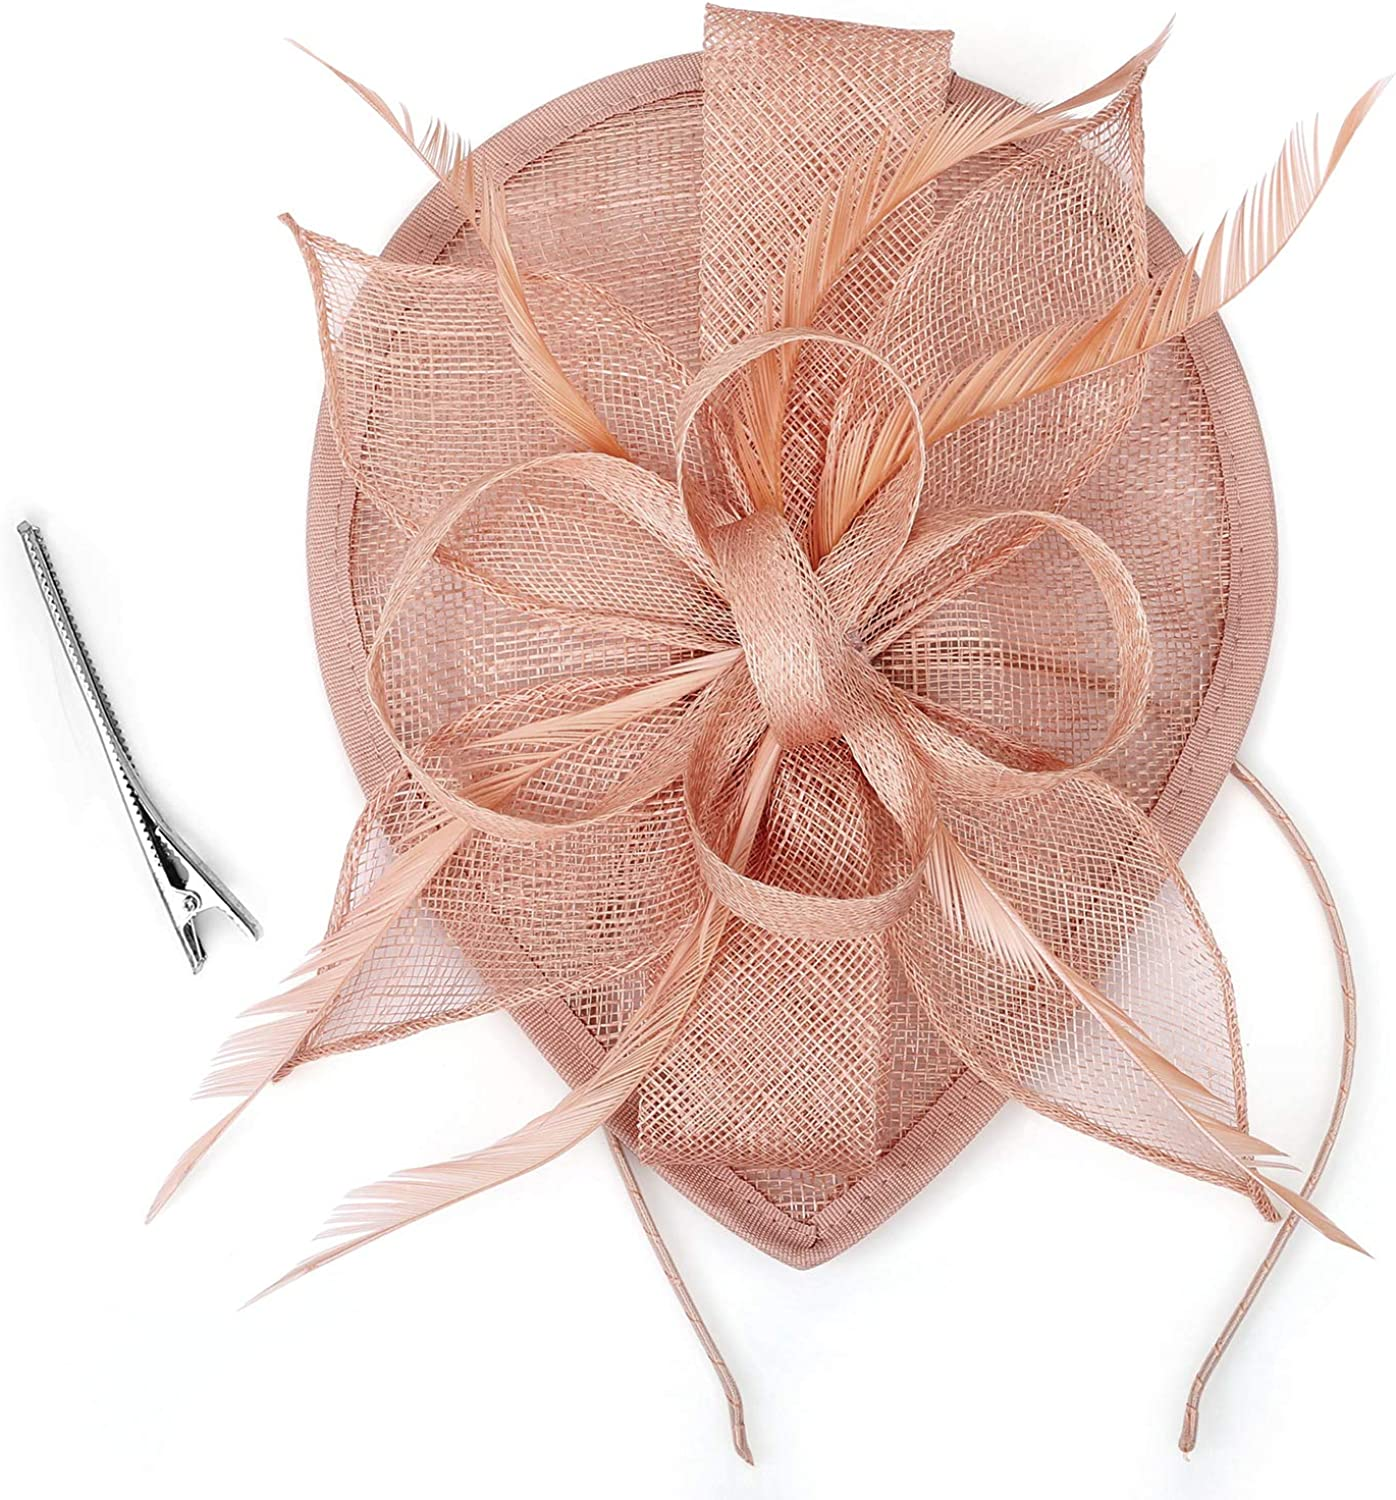 TCYIN Ladies Fascinators Hat Sinamay Cocktail Al sold out. Tea Party Hair Cli Large-scale sale